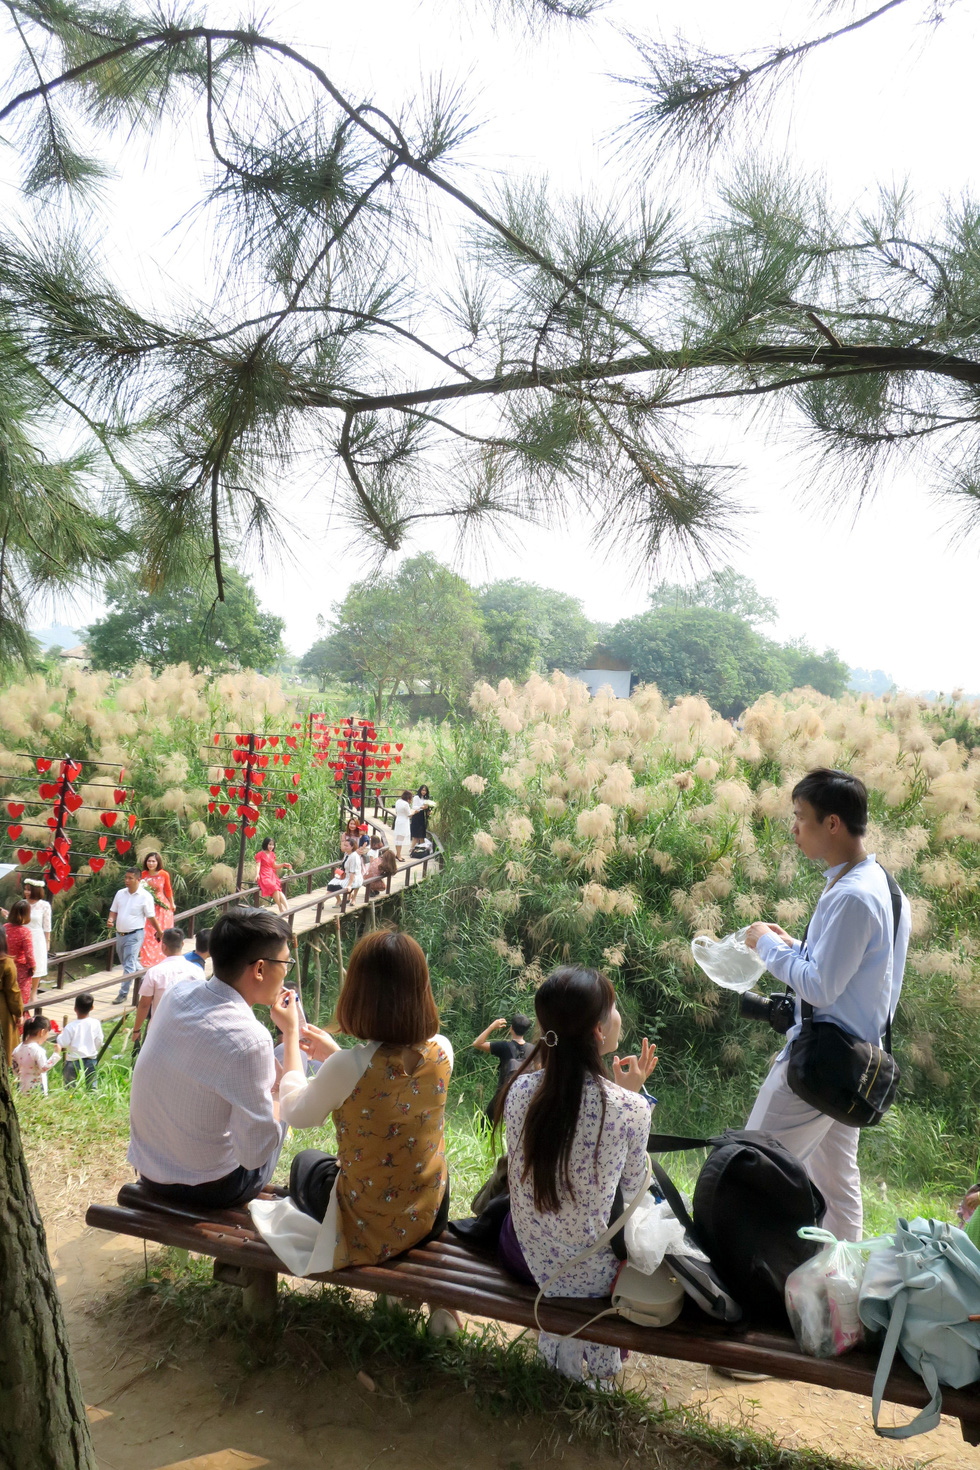 Couples take a break after taking photos at a daisy garden in Hanoi. Photo: T.T.D. / Tuoi Tre